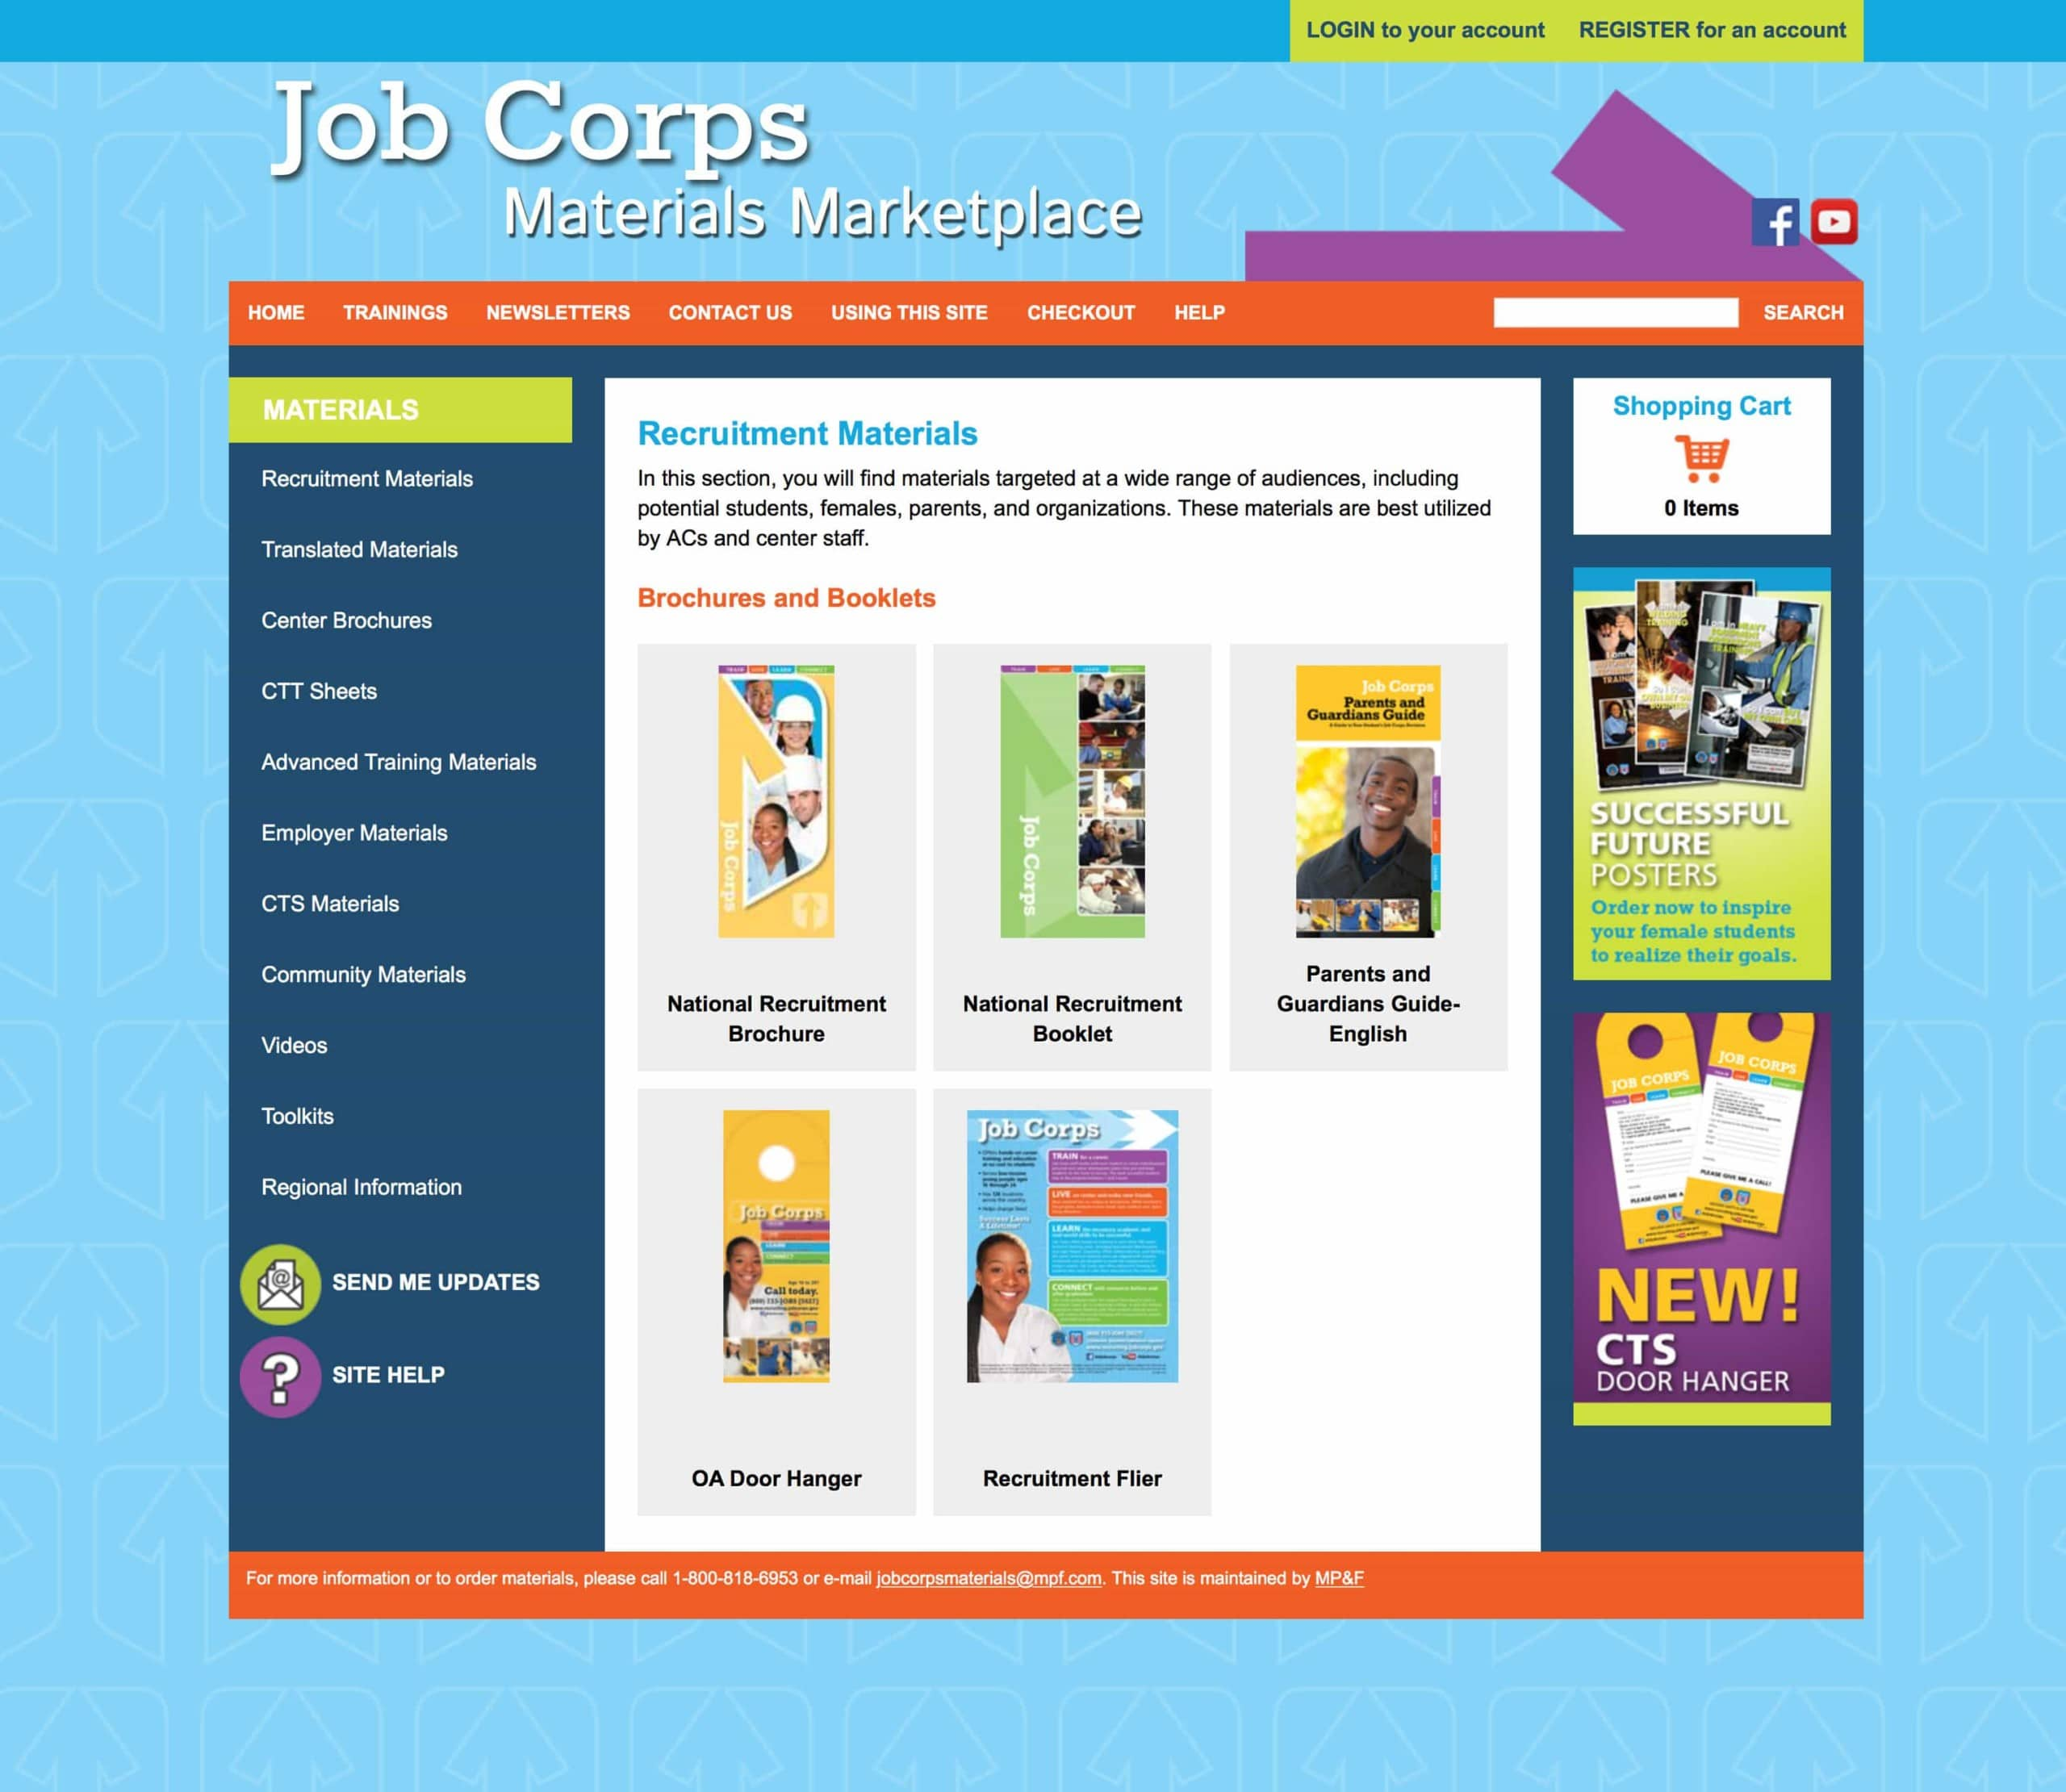 Job Corps - Website Design